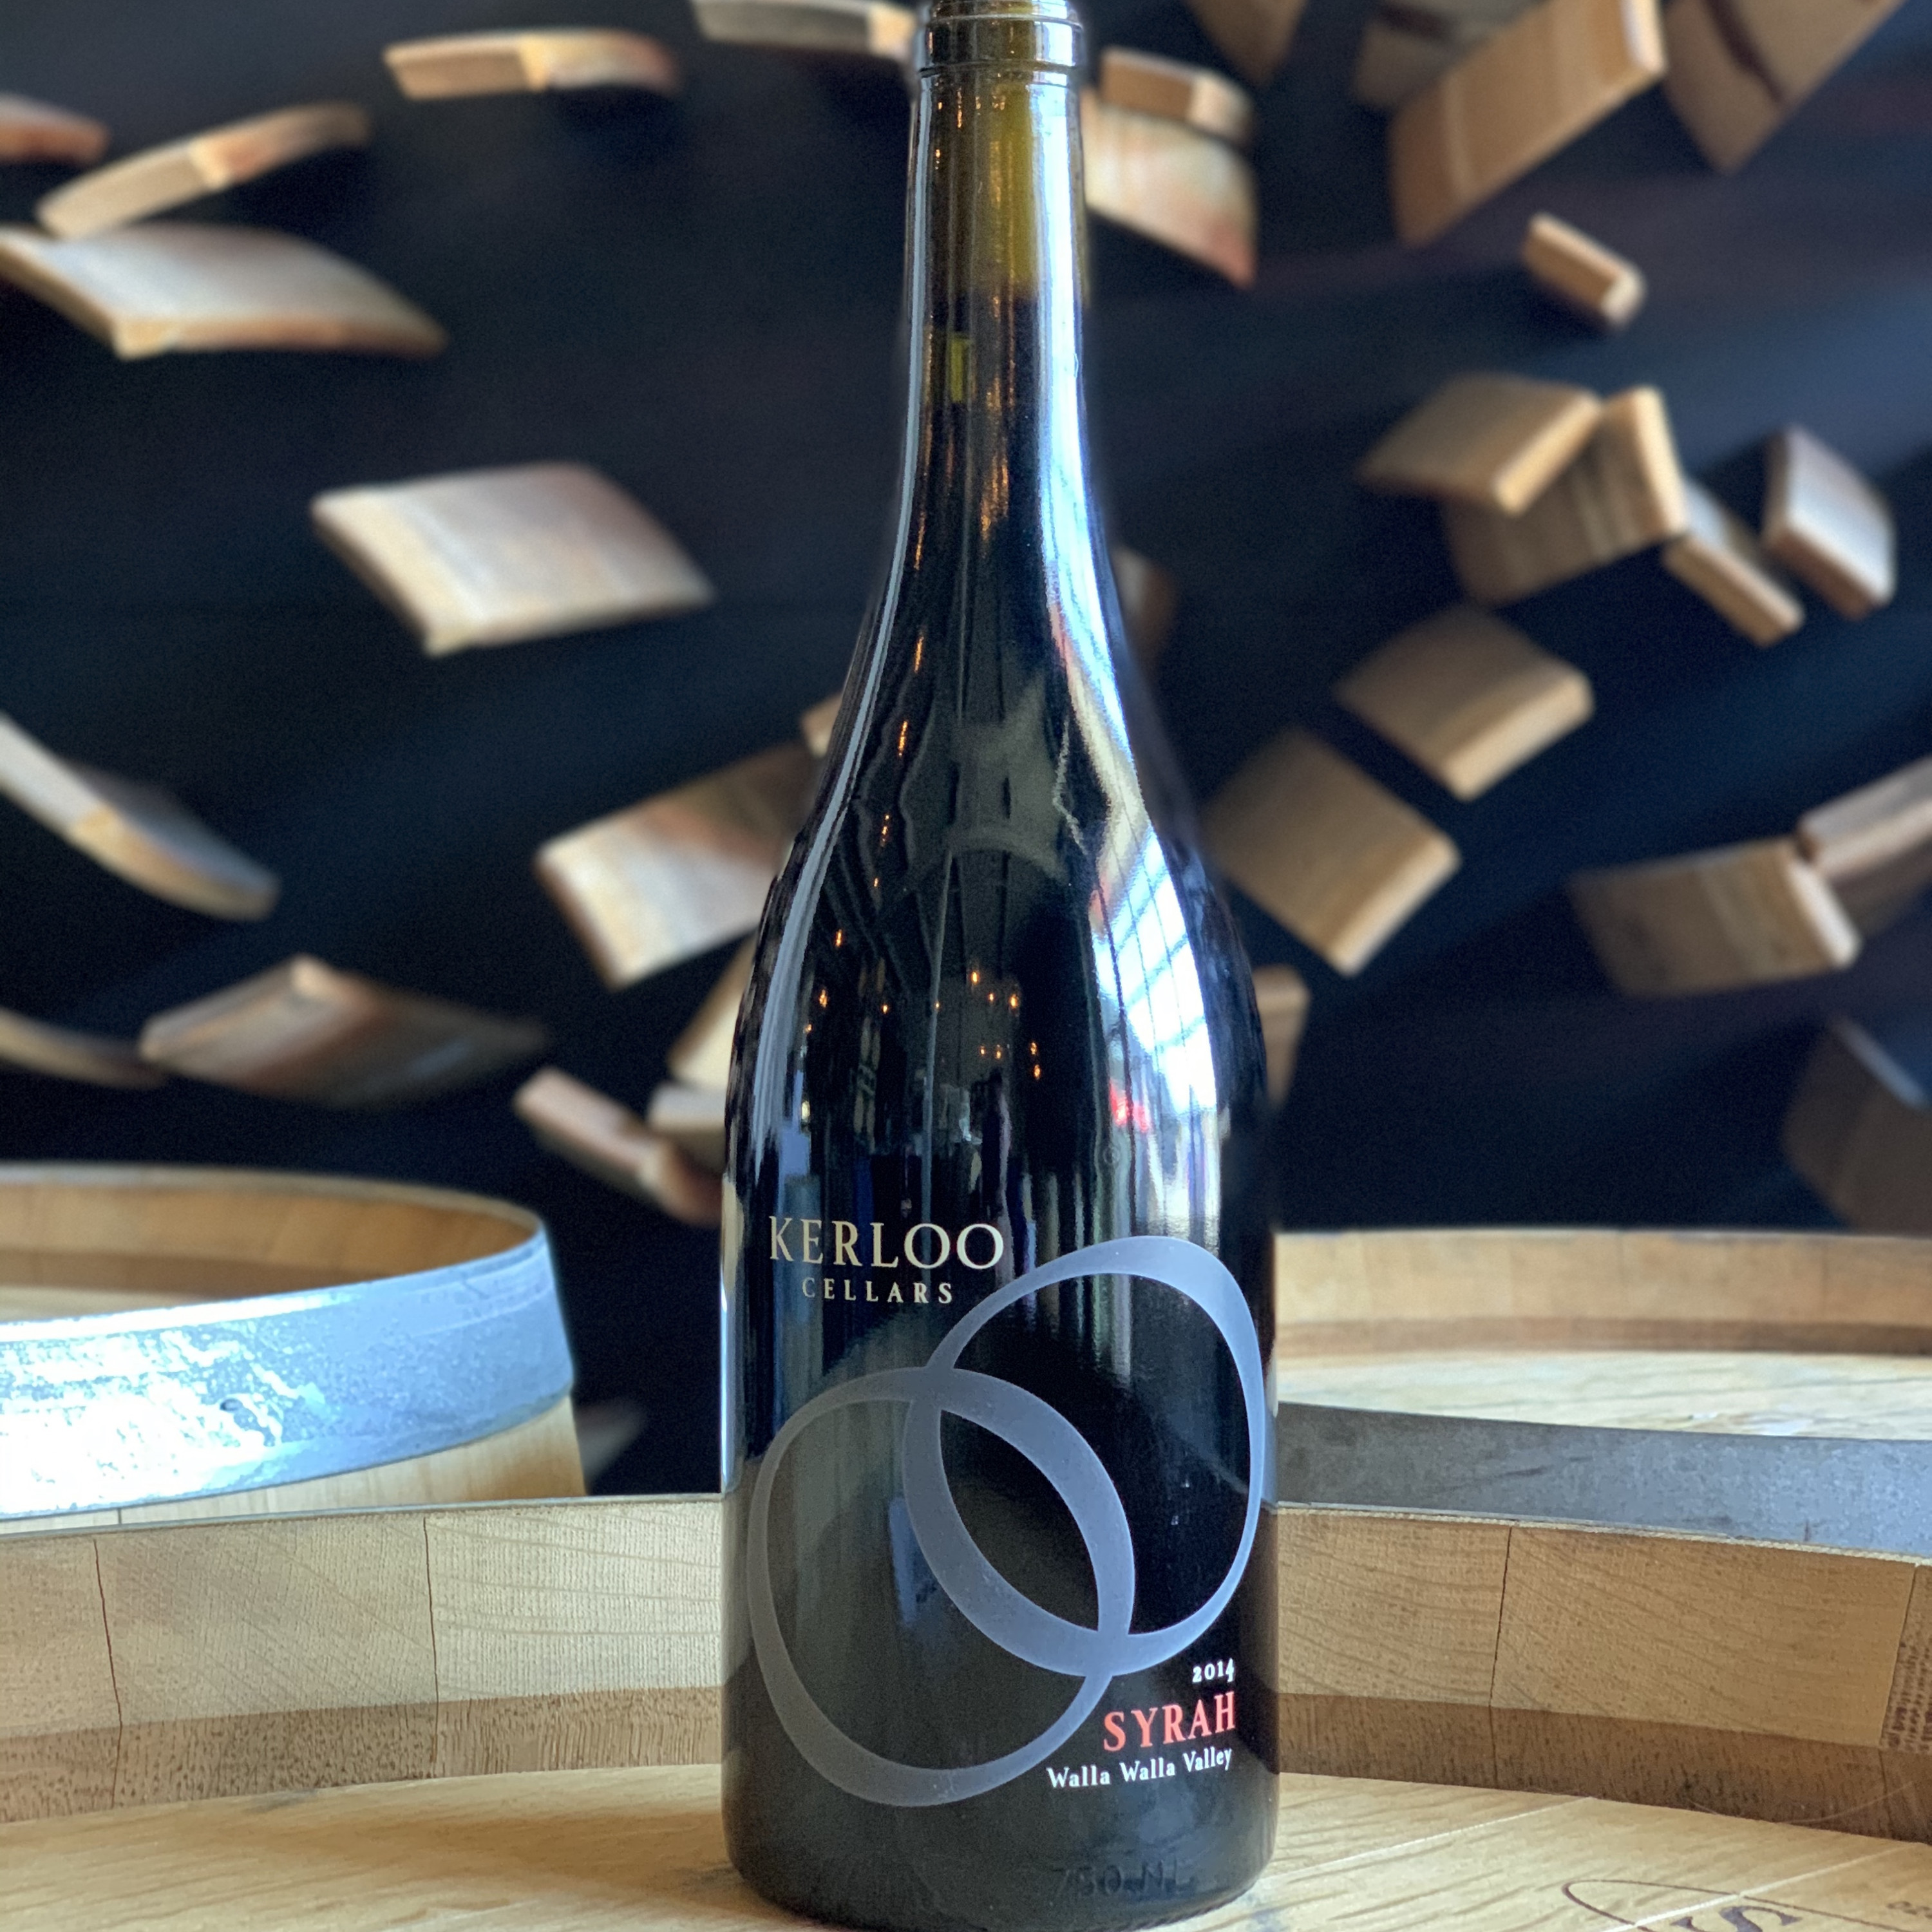 Kerloo Cellars WWV Syrah 2014 KerlooSyrah14 - Crunchy Red Fruit